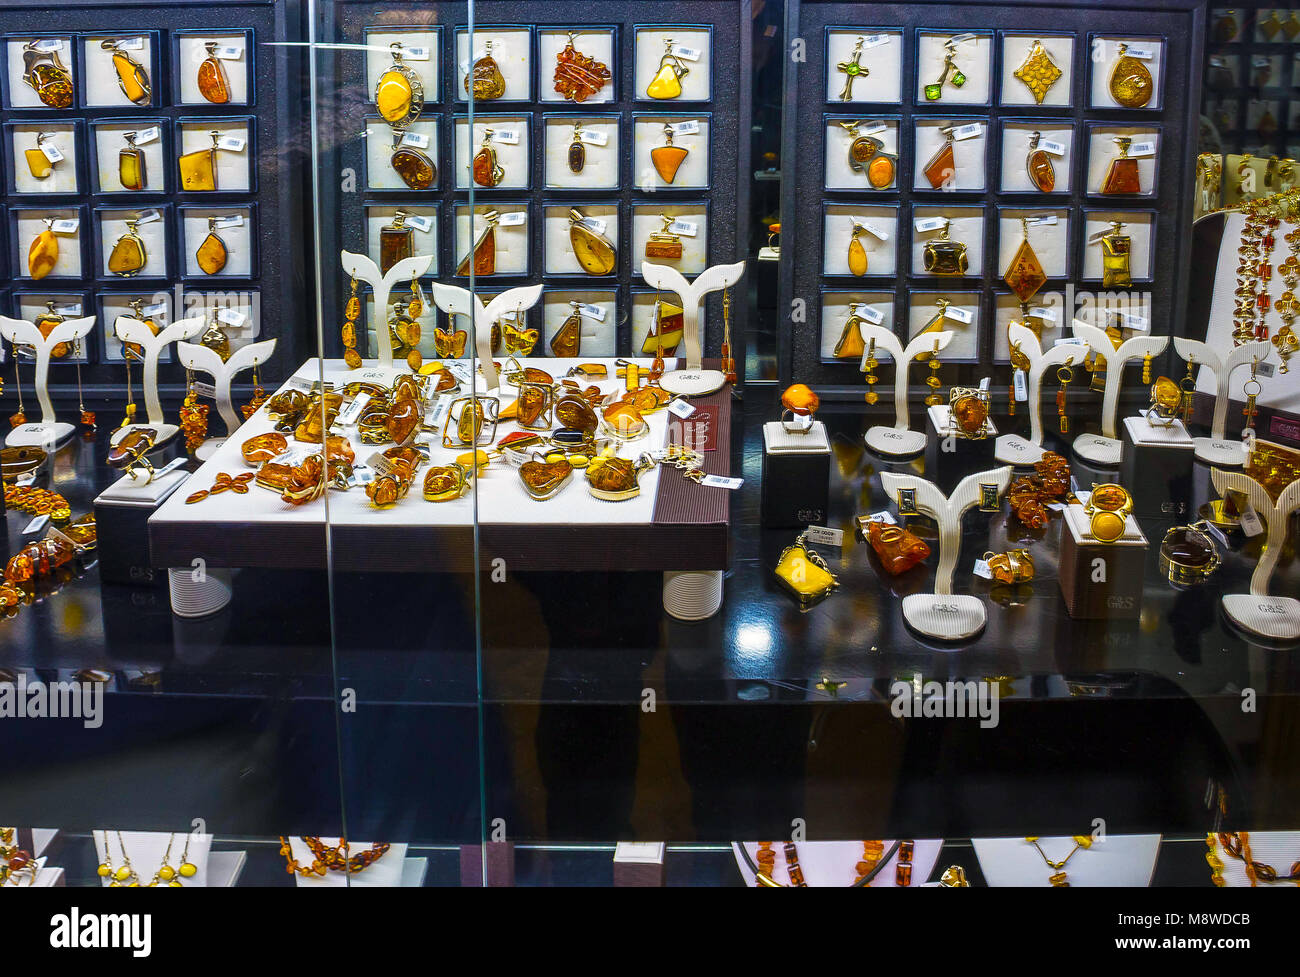 Prague, Czech Republic - December 31, 2017: Amber. Necklace with big spheres of amber in Prague. Stock Photo